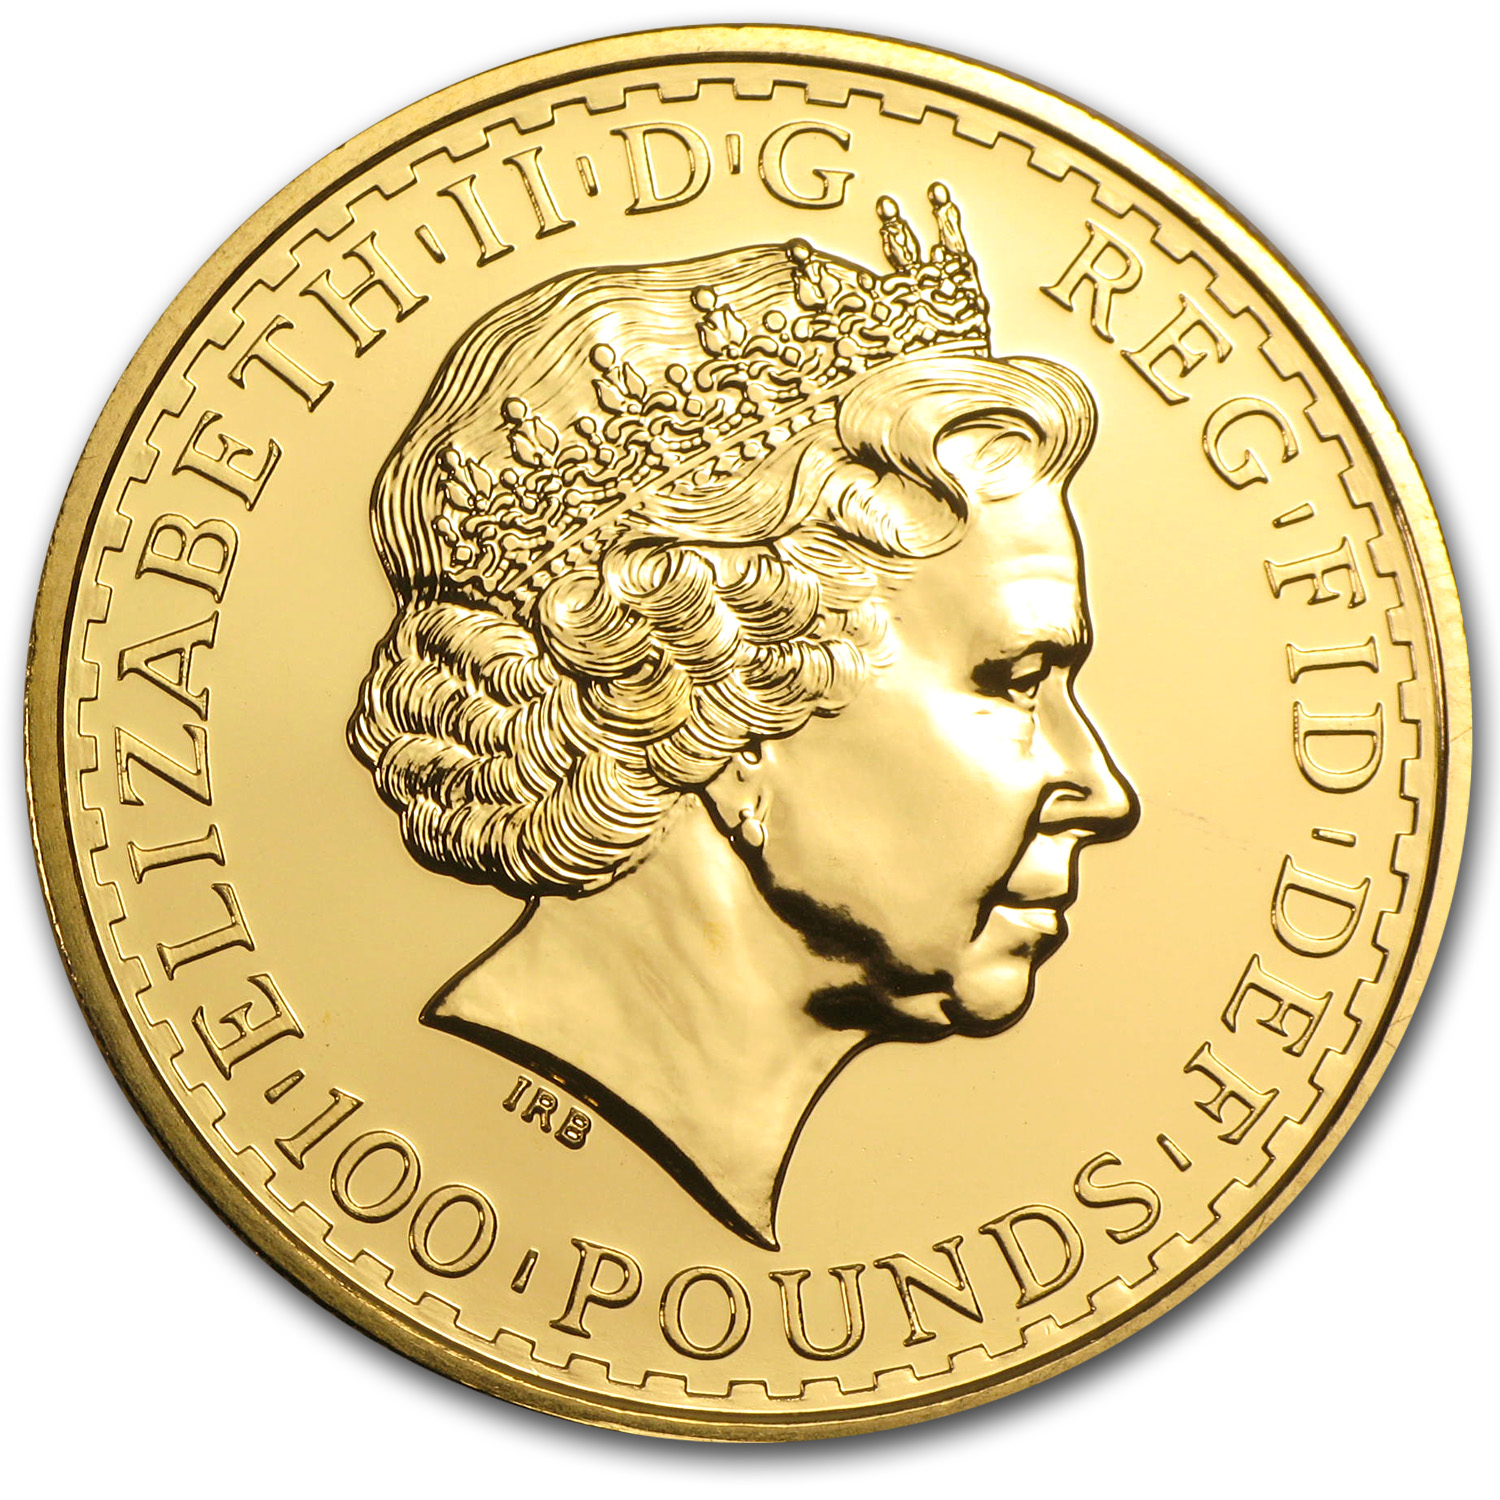 2003 1 oz Gold Britannia - Brilliant Uncirculated